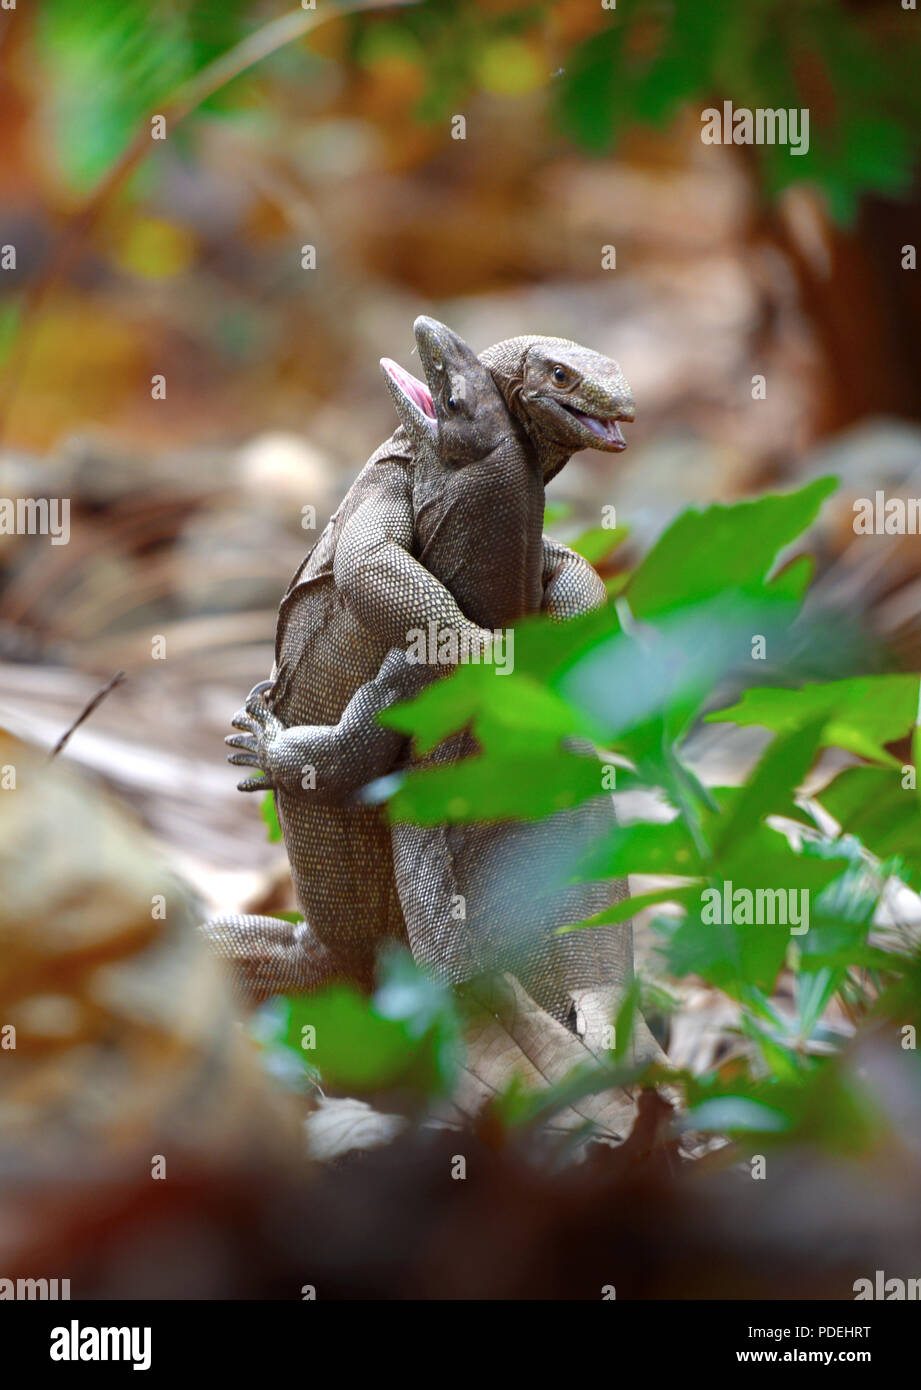 two iguana animals in